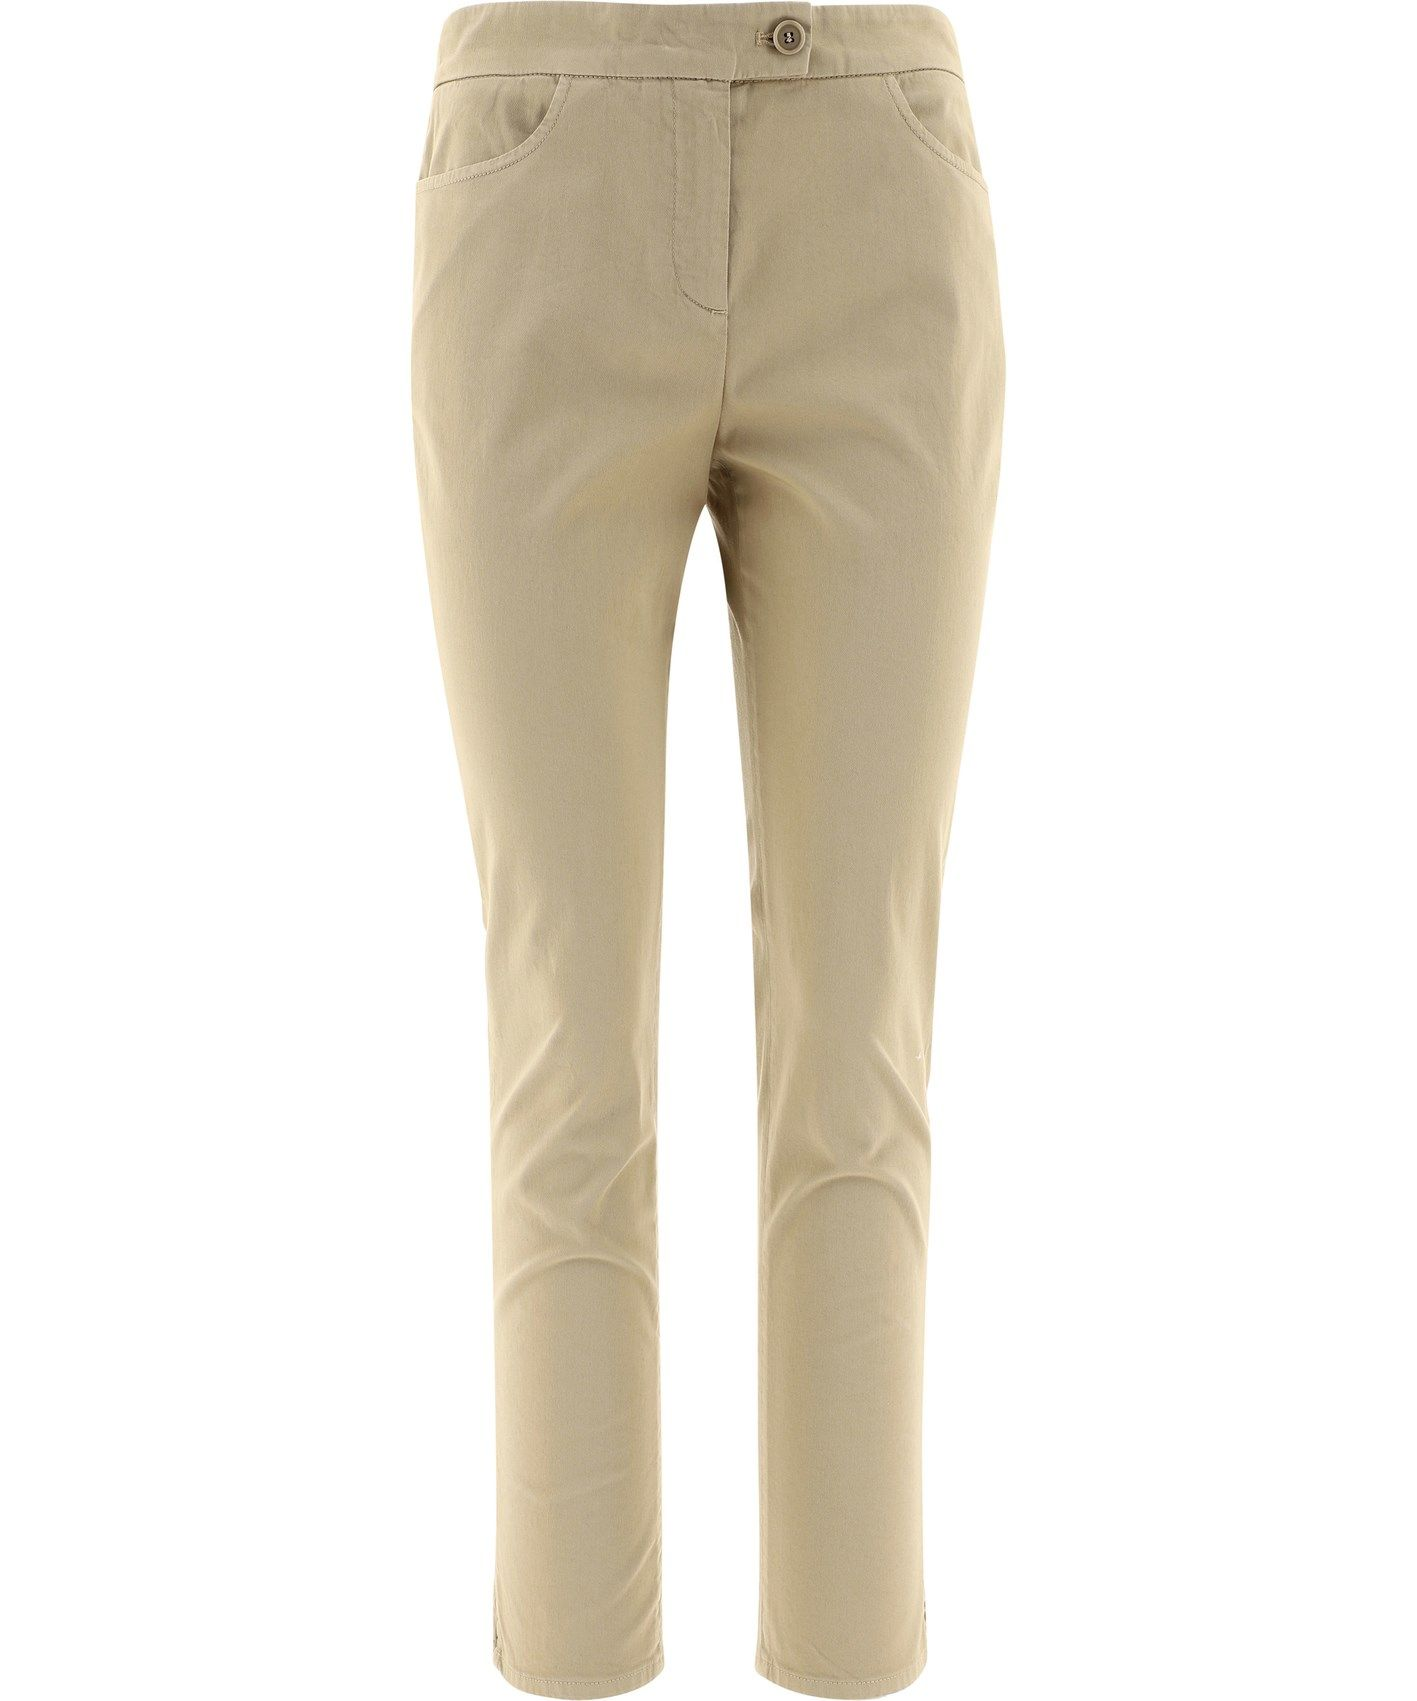 Aspesi ASPESI WOMEN'S BEIGE COTTON PANTS